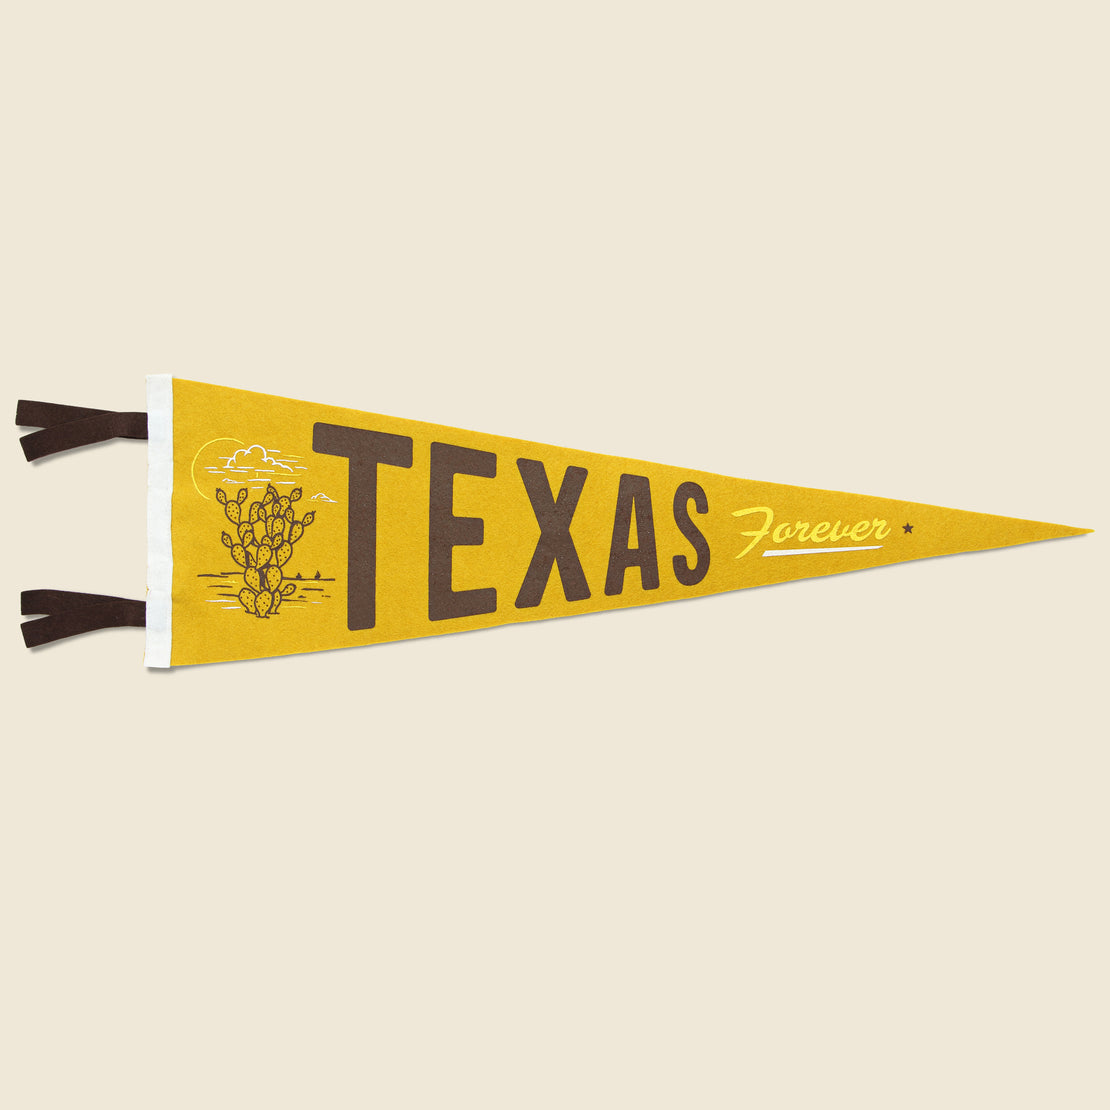 Oxford Pennant Texas Forever Pennant